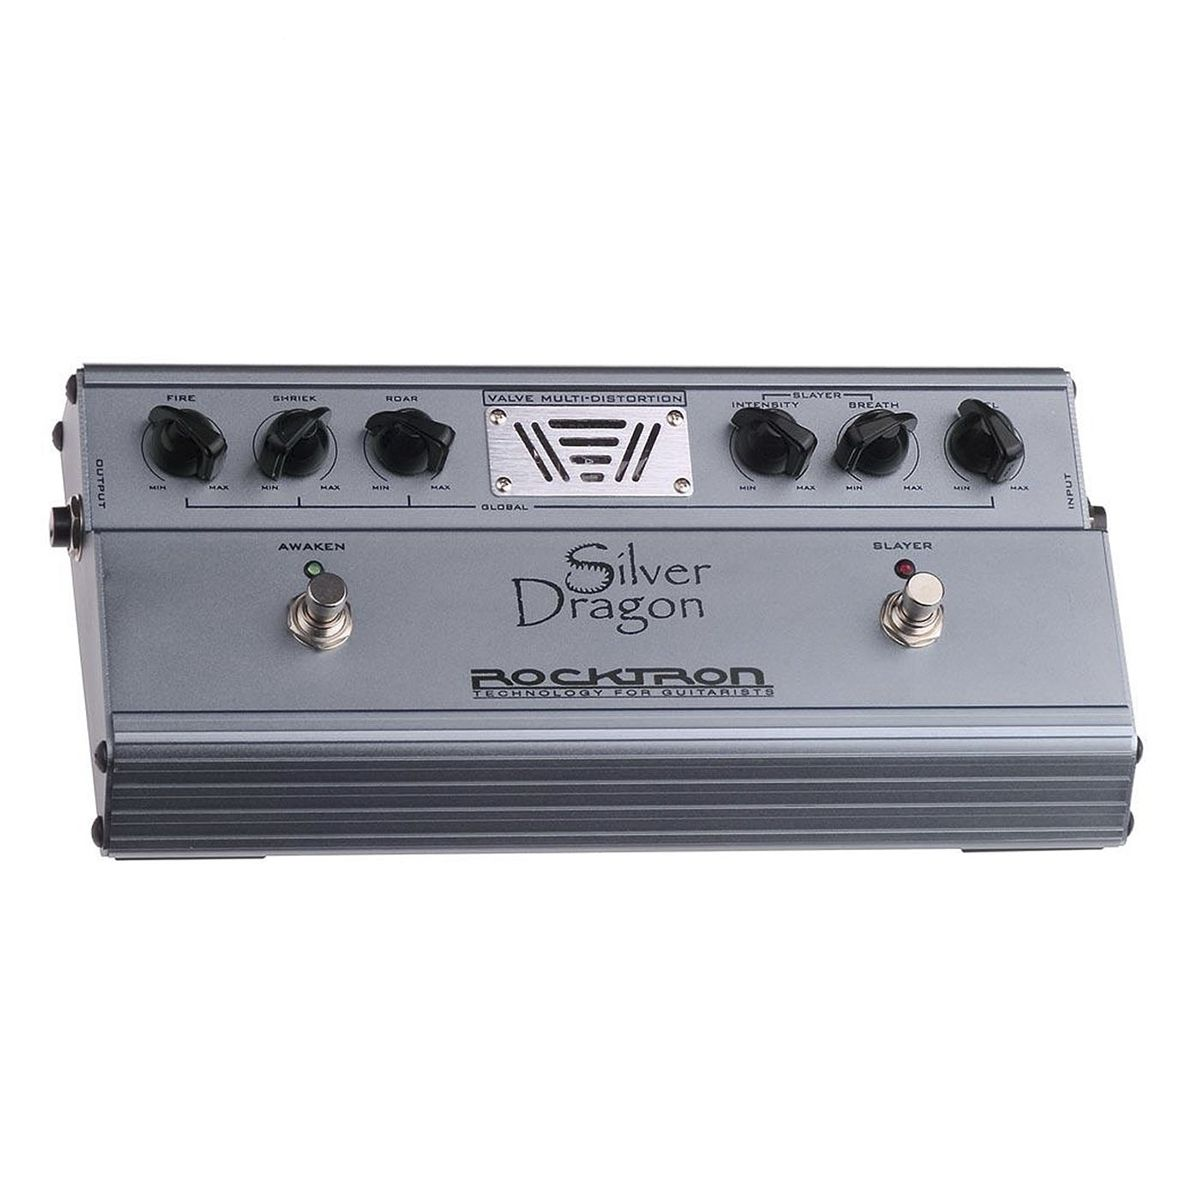 Pedal de Efeito Valvulado Rocktron Dragon Silver Distortion